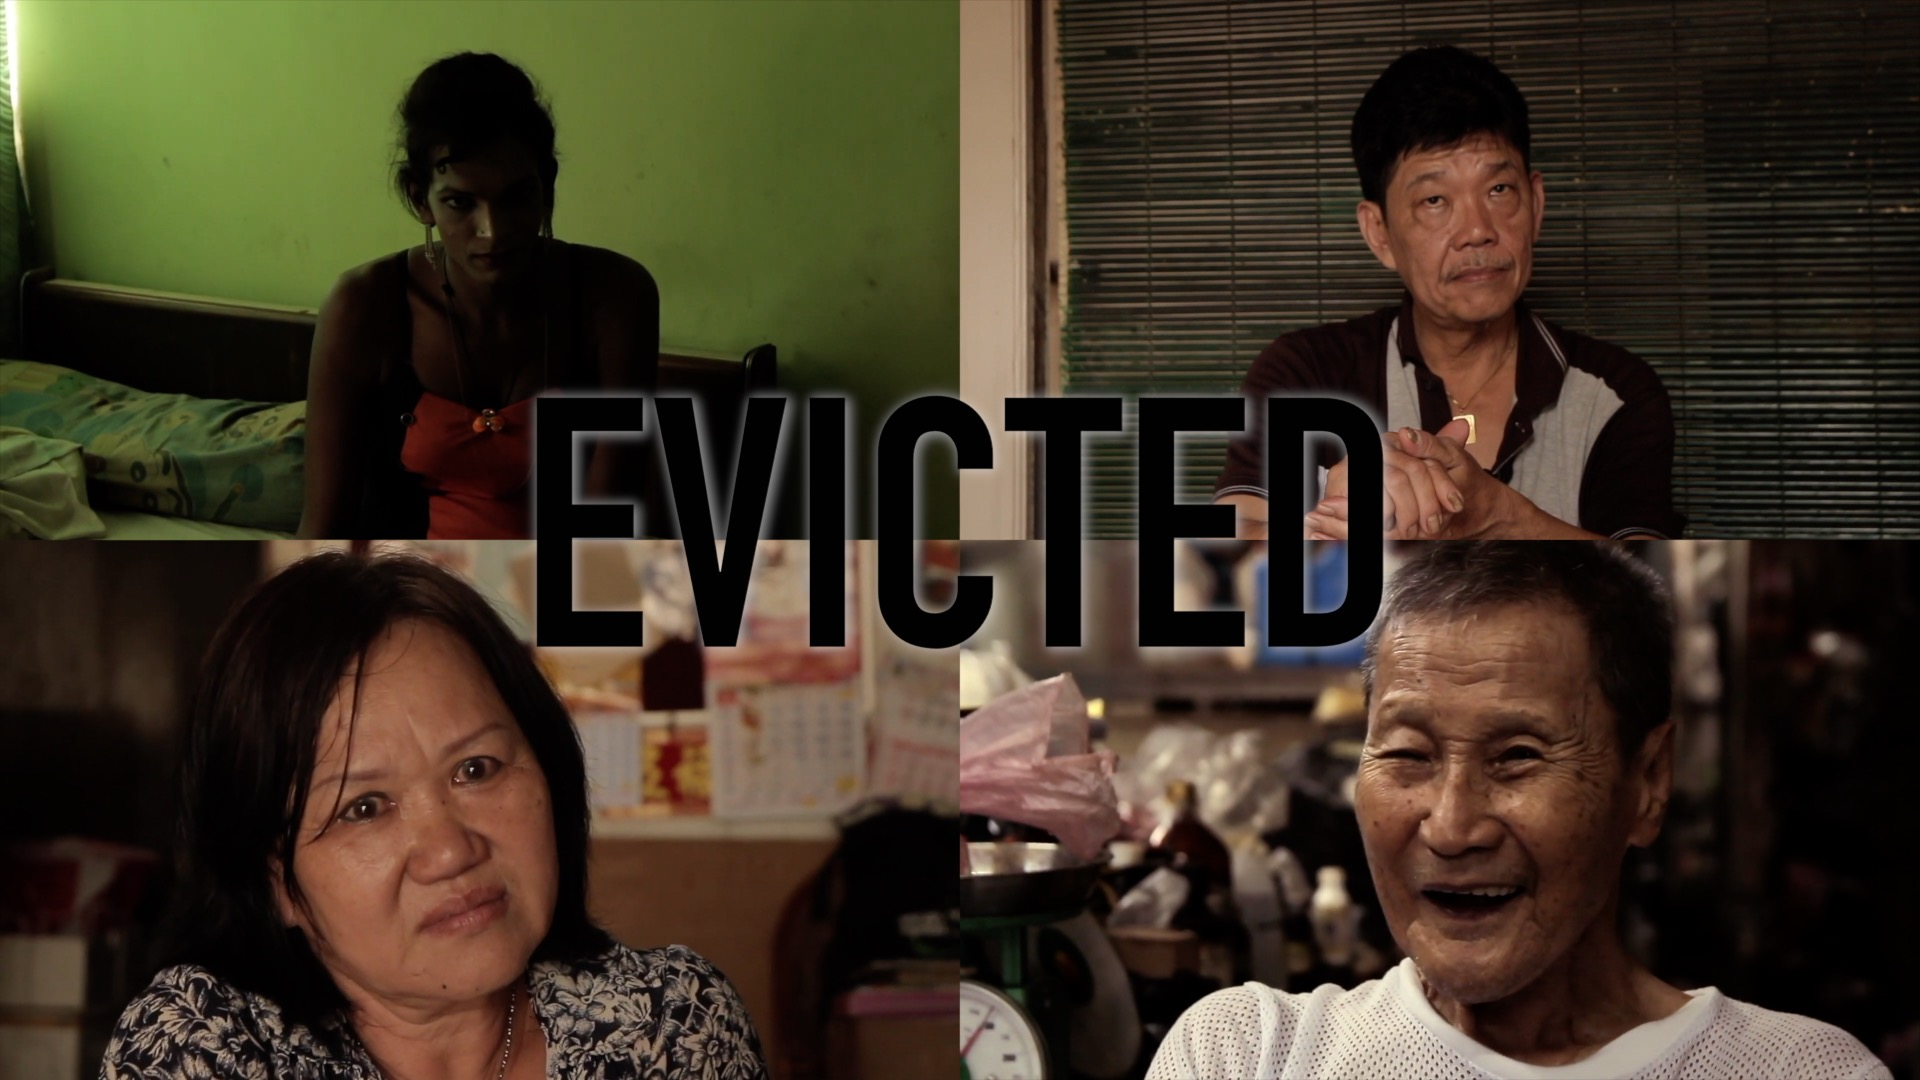 evicted-the-film